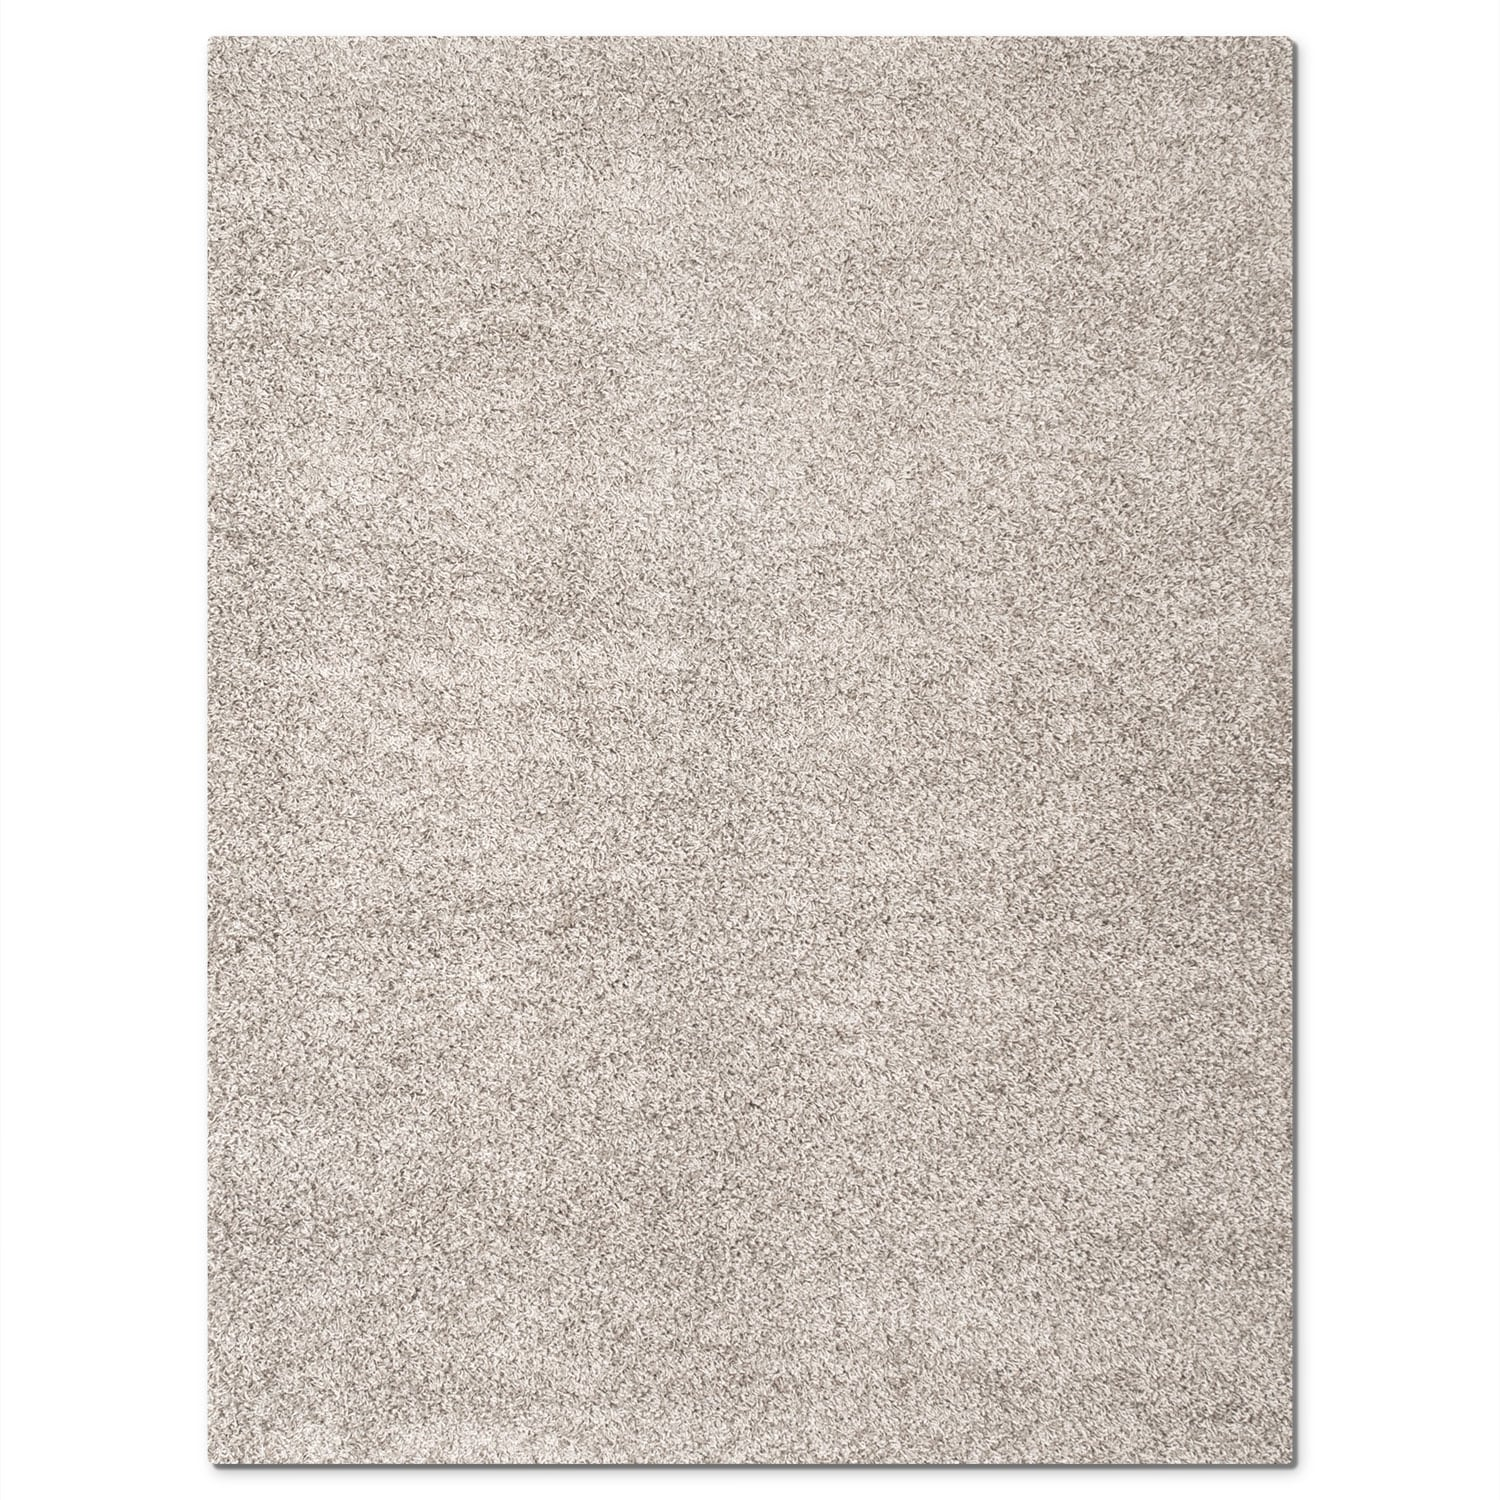 Domino gray shag area rug 8 39 x 10 39 value city furniture for The living room channel 10 rug